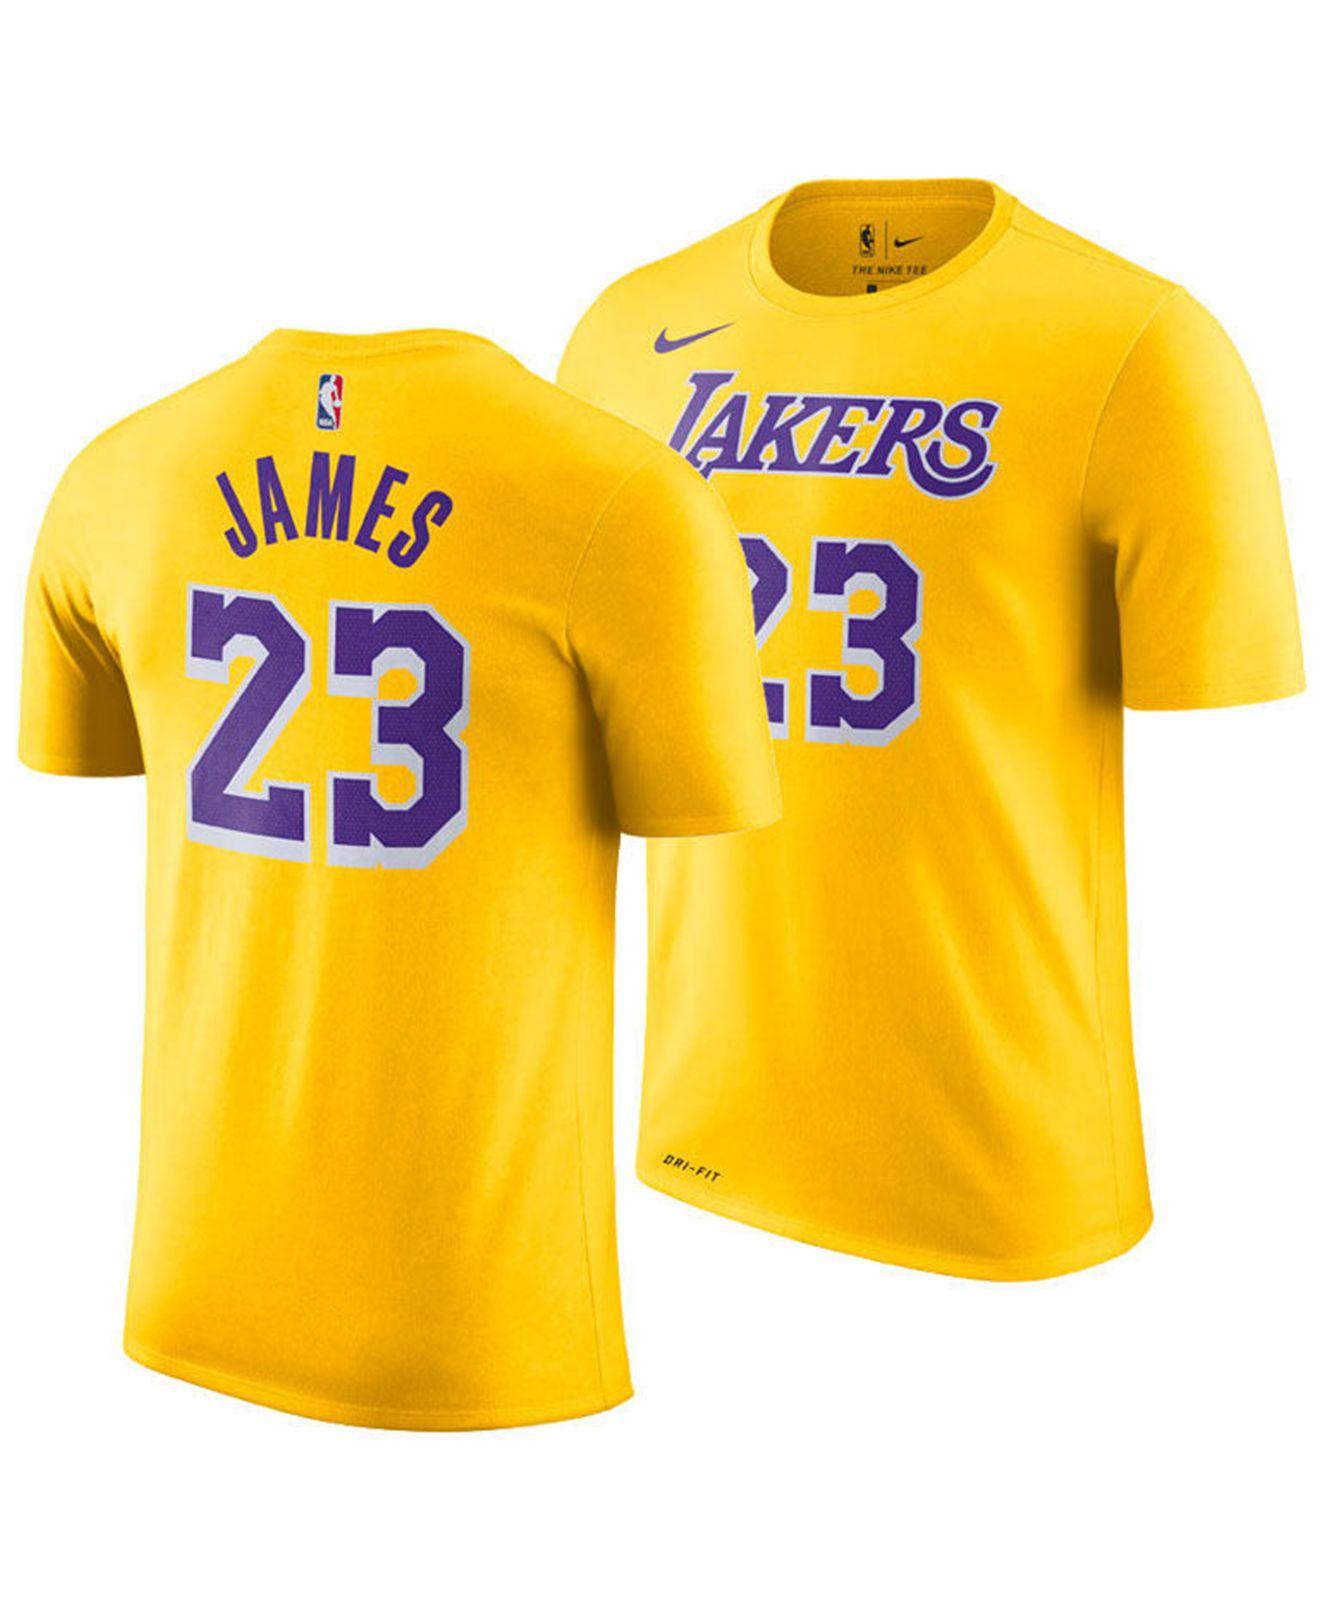 002f69097 Nike - Yellow Lebron James Los Angeles Lakers Icon Player T-shirt for Men  -. View fullscreen